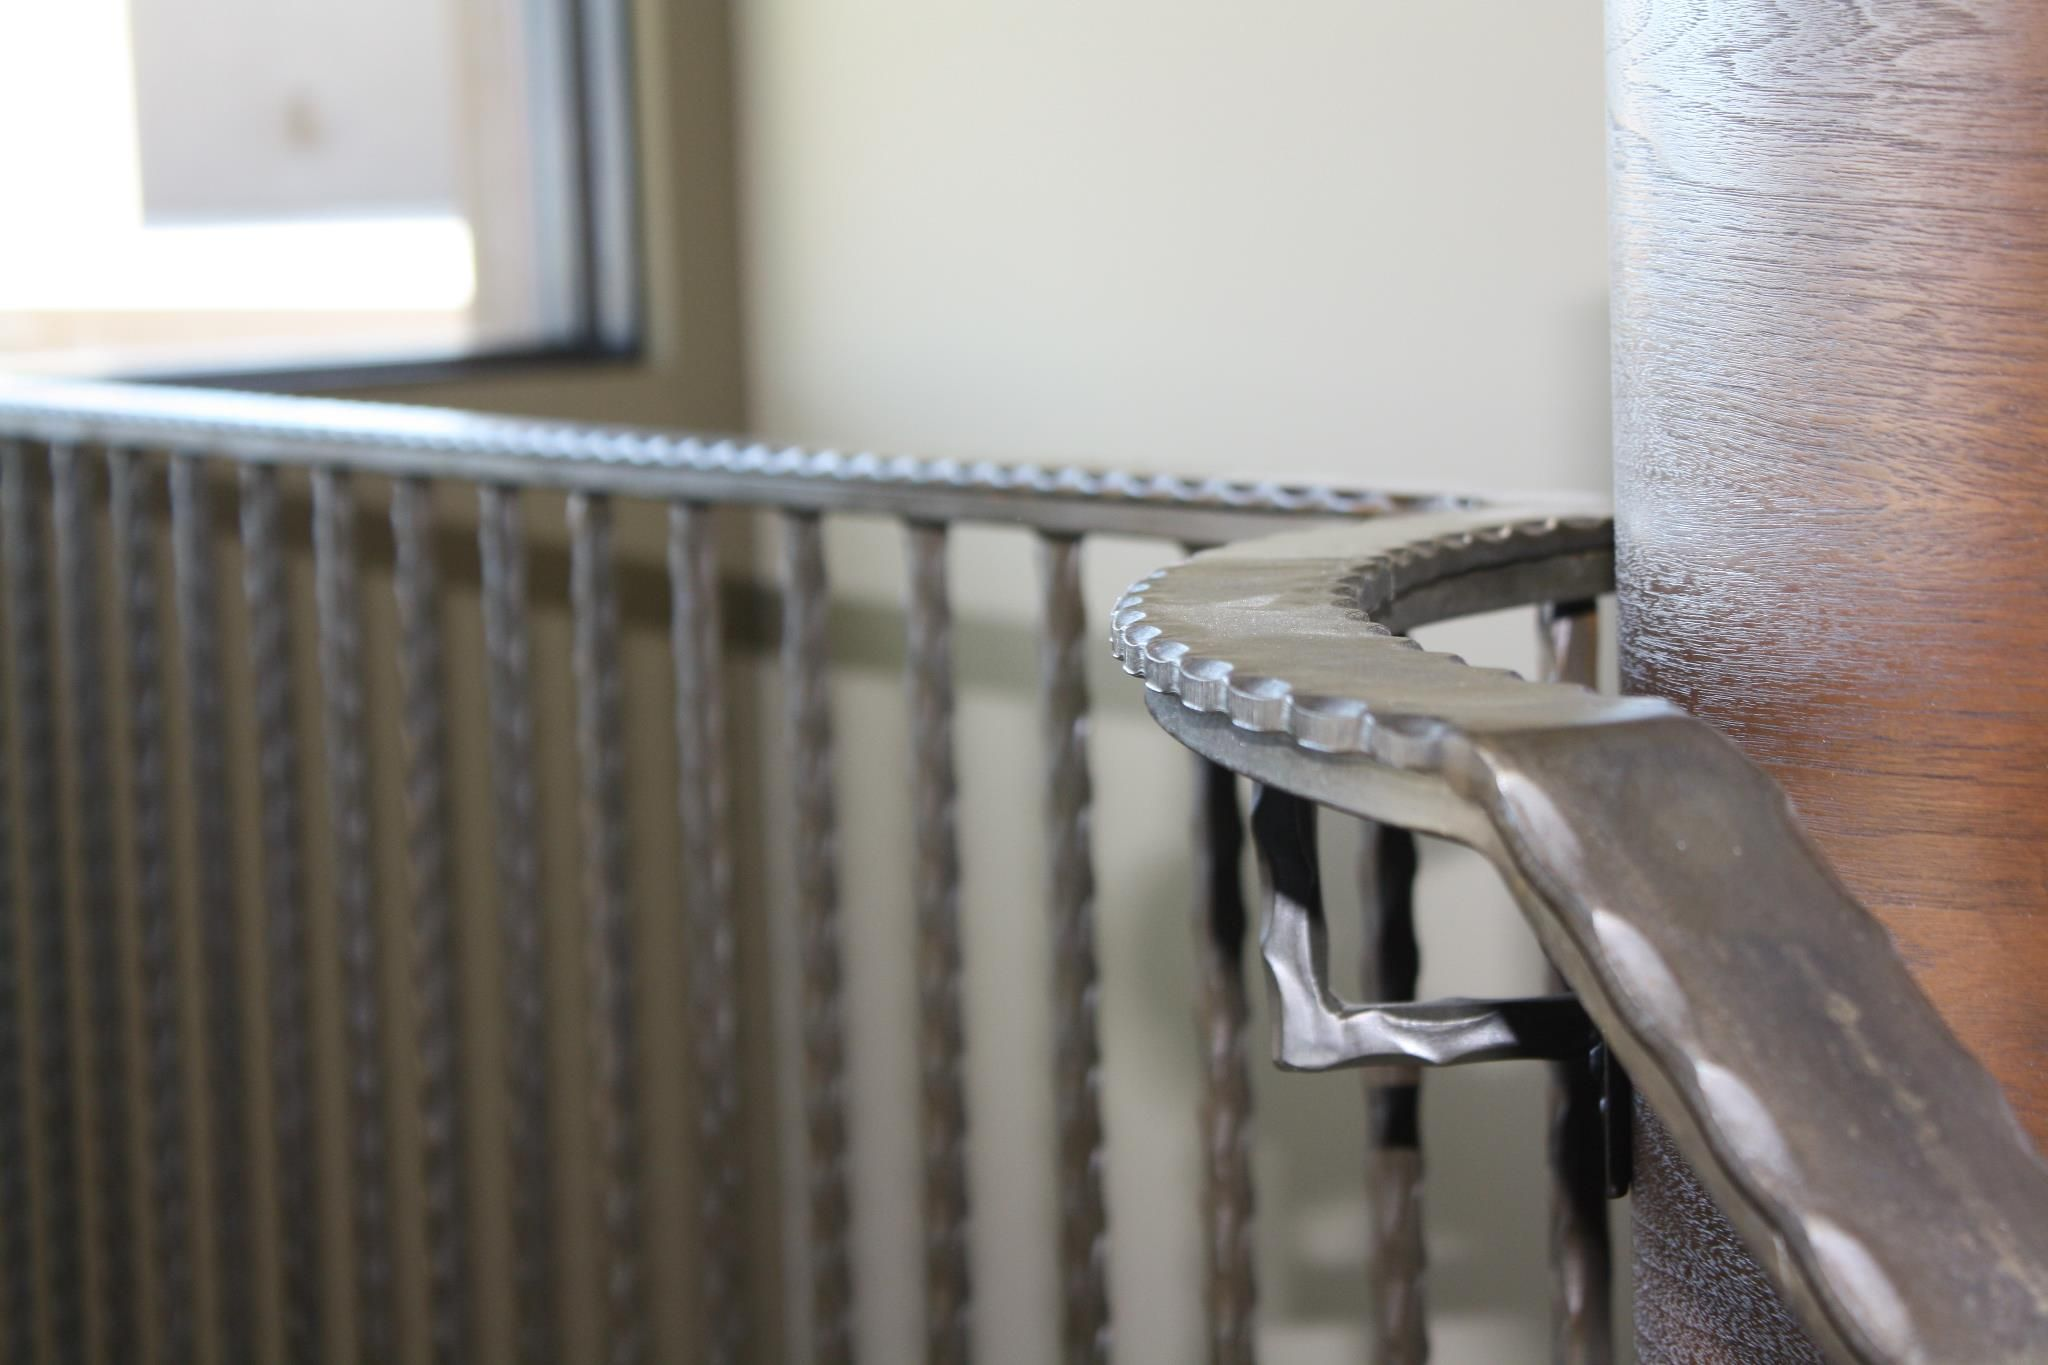 Hammered Handrails And Balusters Give A Simple Tasteful Look To